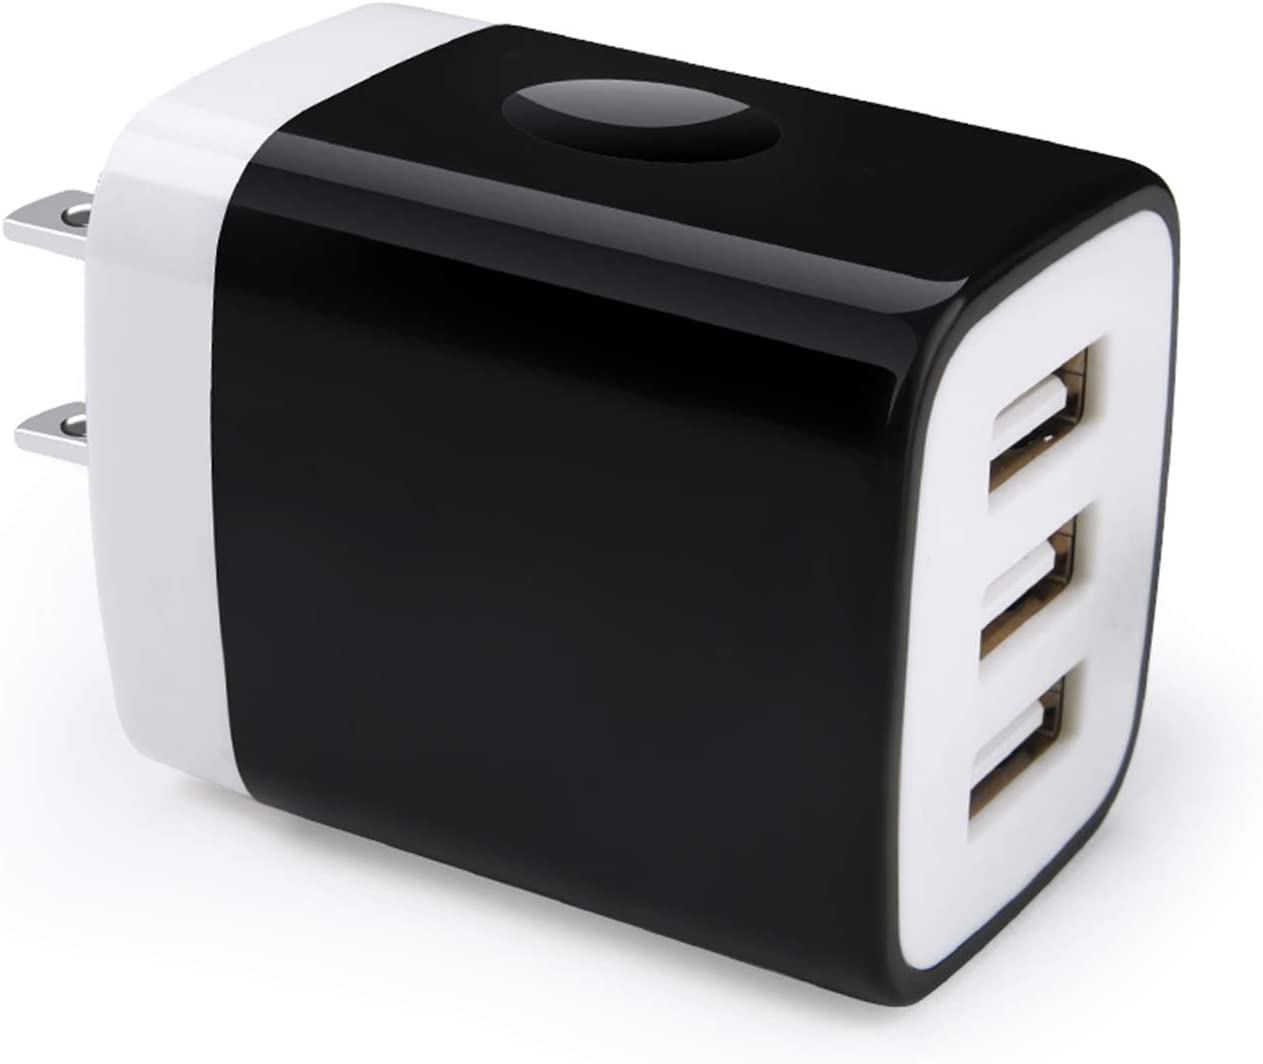 Wall Charger Plug, Hootek 3-Multi Port USB Charger Block Power Adapter 3.1A Charging Cube Brick Compatible iPhone 11 Pro XS XR X 8 7 Plus, iPad, Galaxy S20 FE 5G S10 S9 S8 S7 Note20 Ultra 10+ 9 8, LG